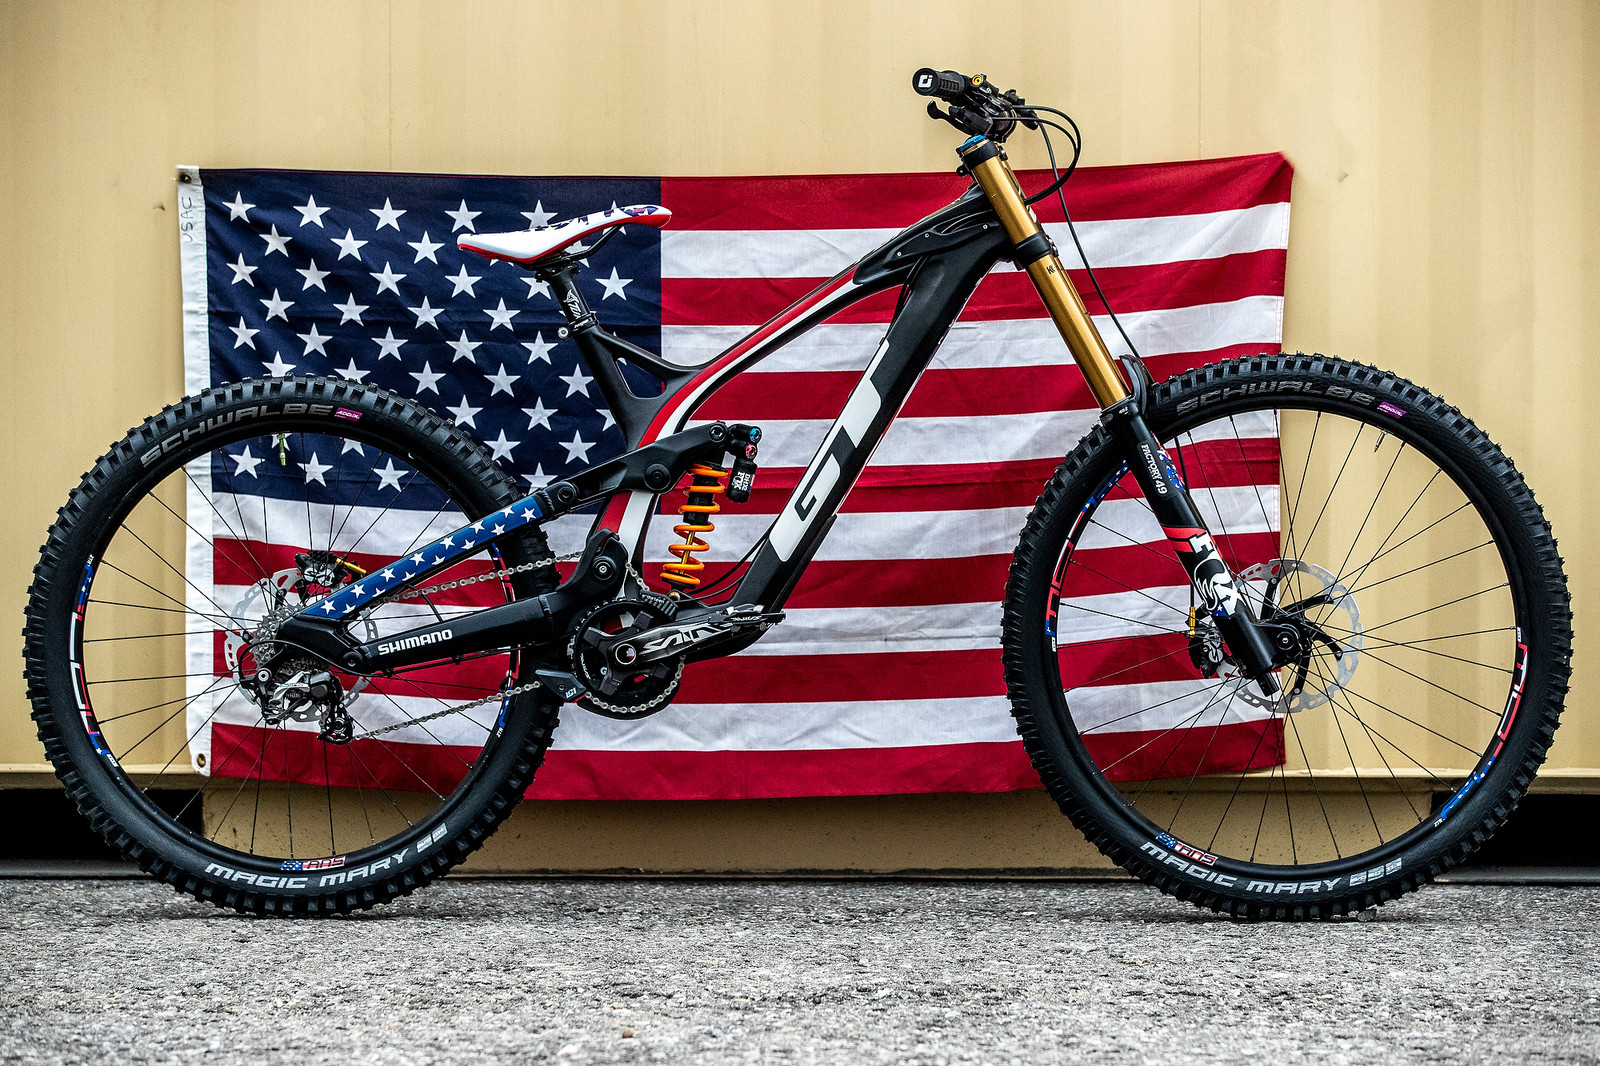 #USDH Joey Foresta's GT Fury For World Championships - GT Bicycles World Championships DH Race Bikes - Mountain Biking Pictures - Vital MTB